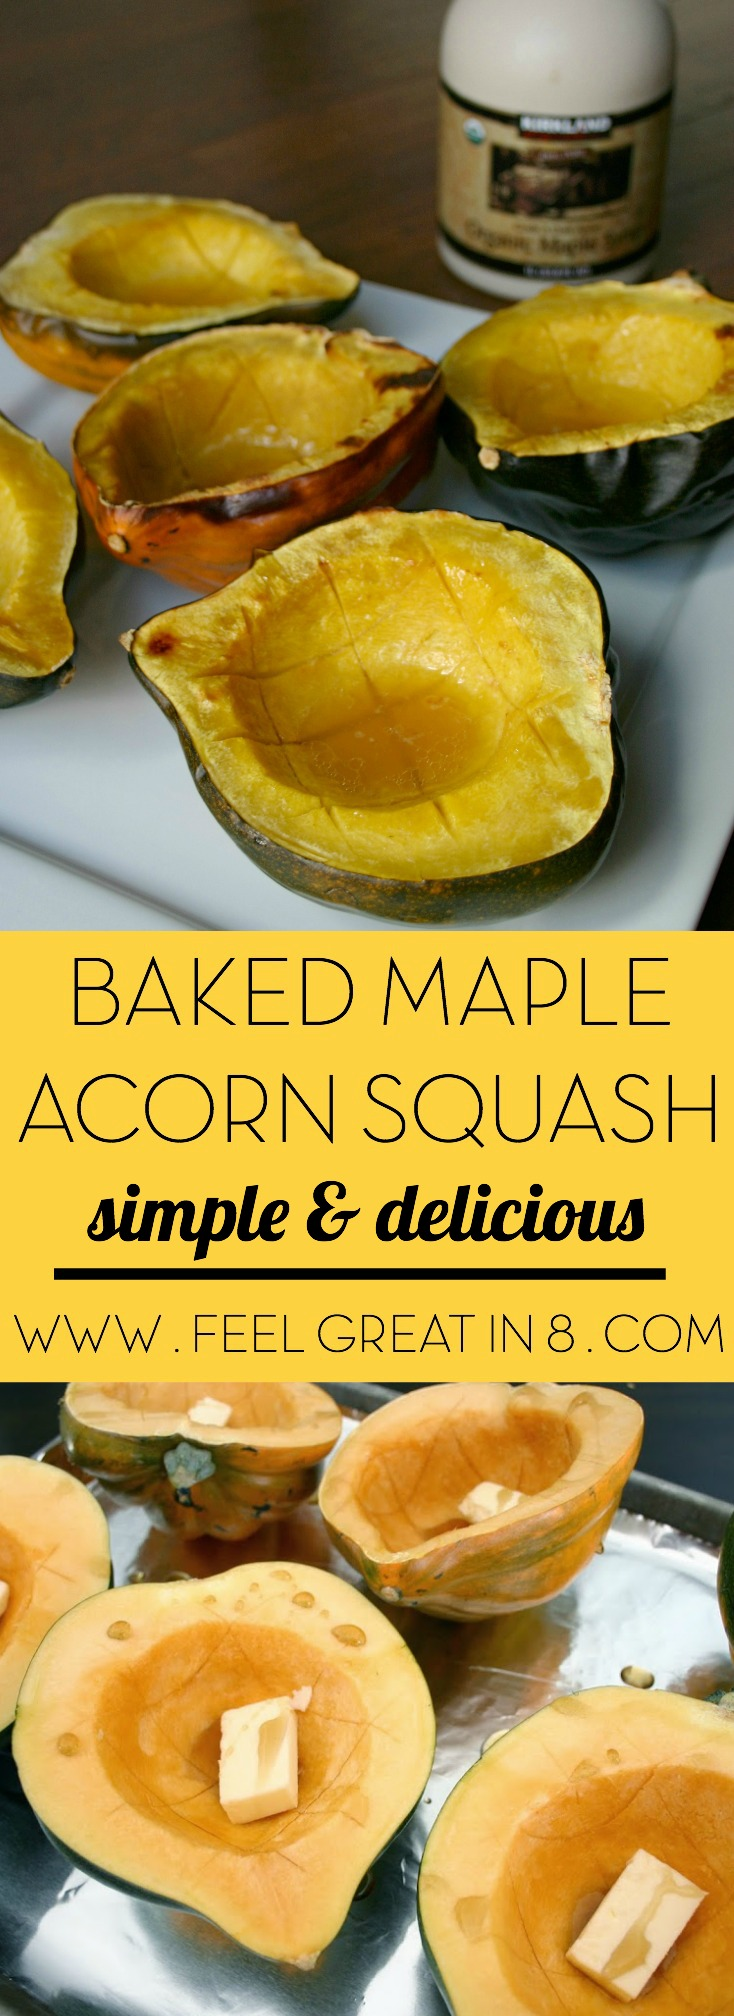 Baked Maple Acorn Squash - This healthy, delicious, and beautiful side dish is the perfect quick & easy addition to your Thanksgiving menu!